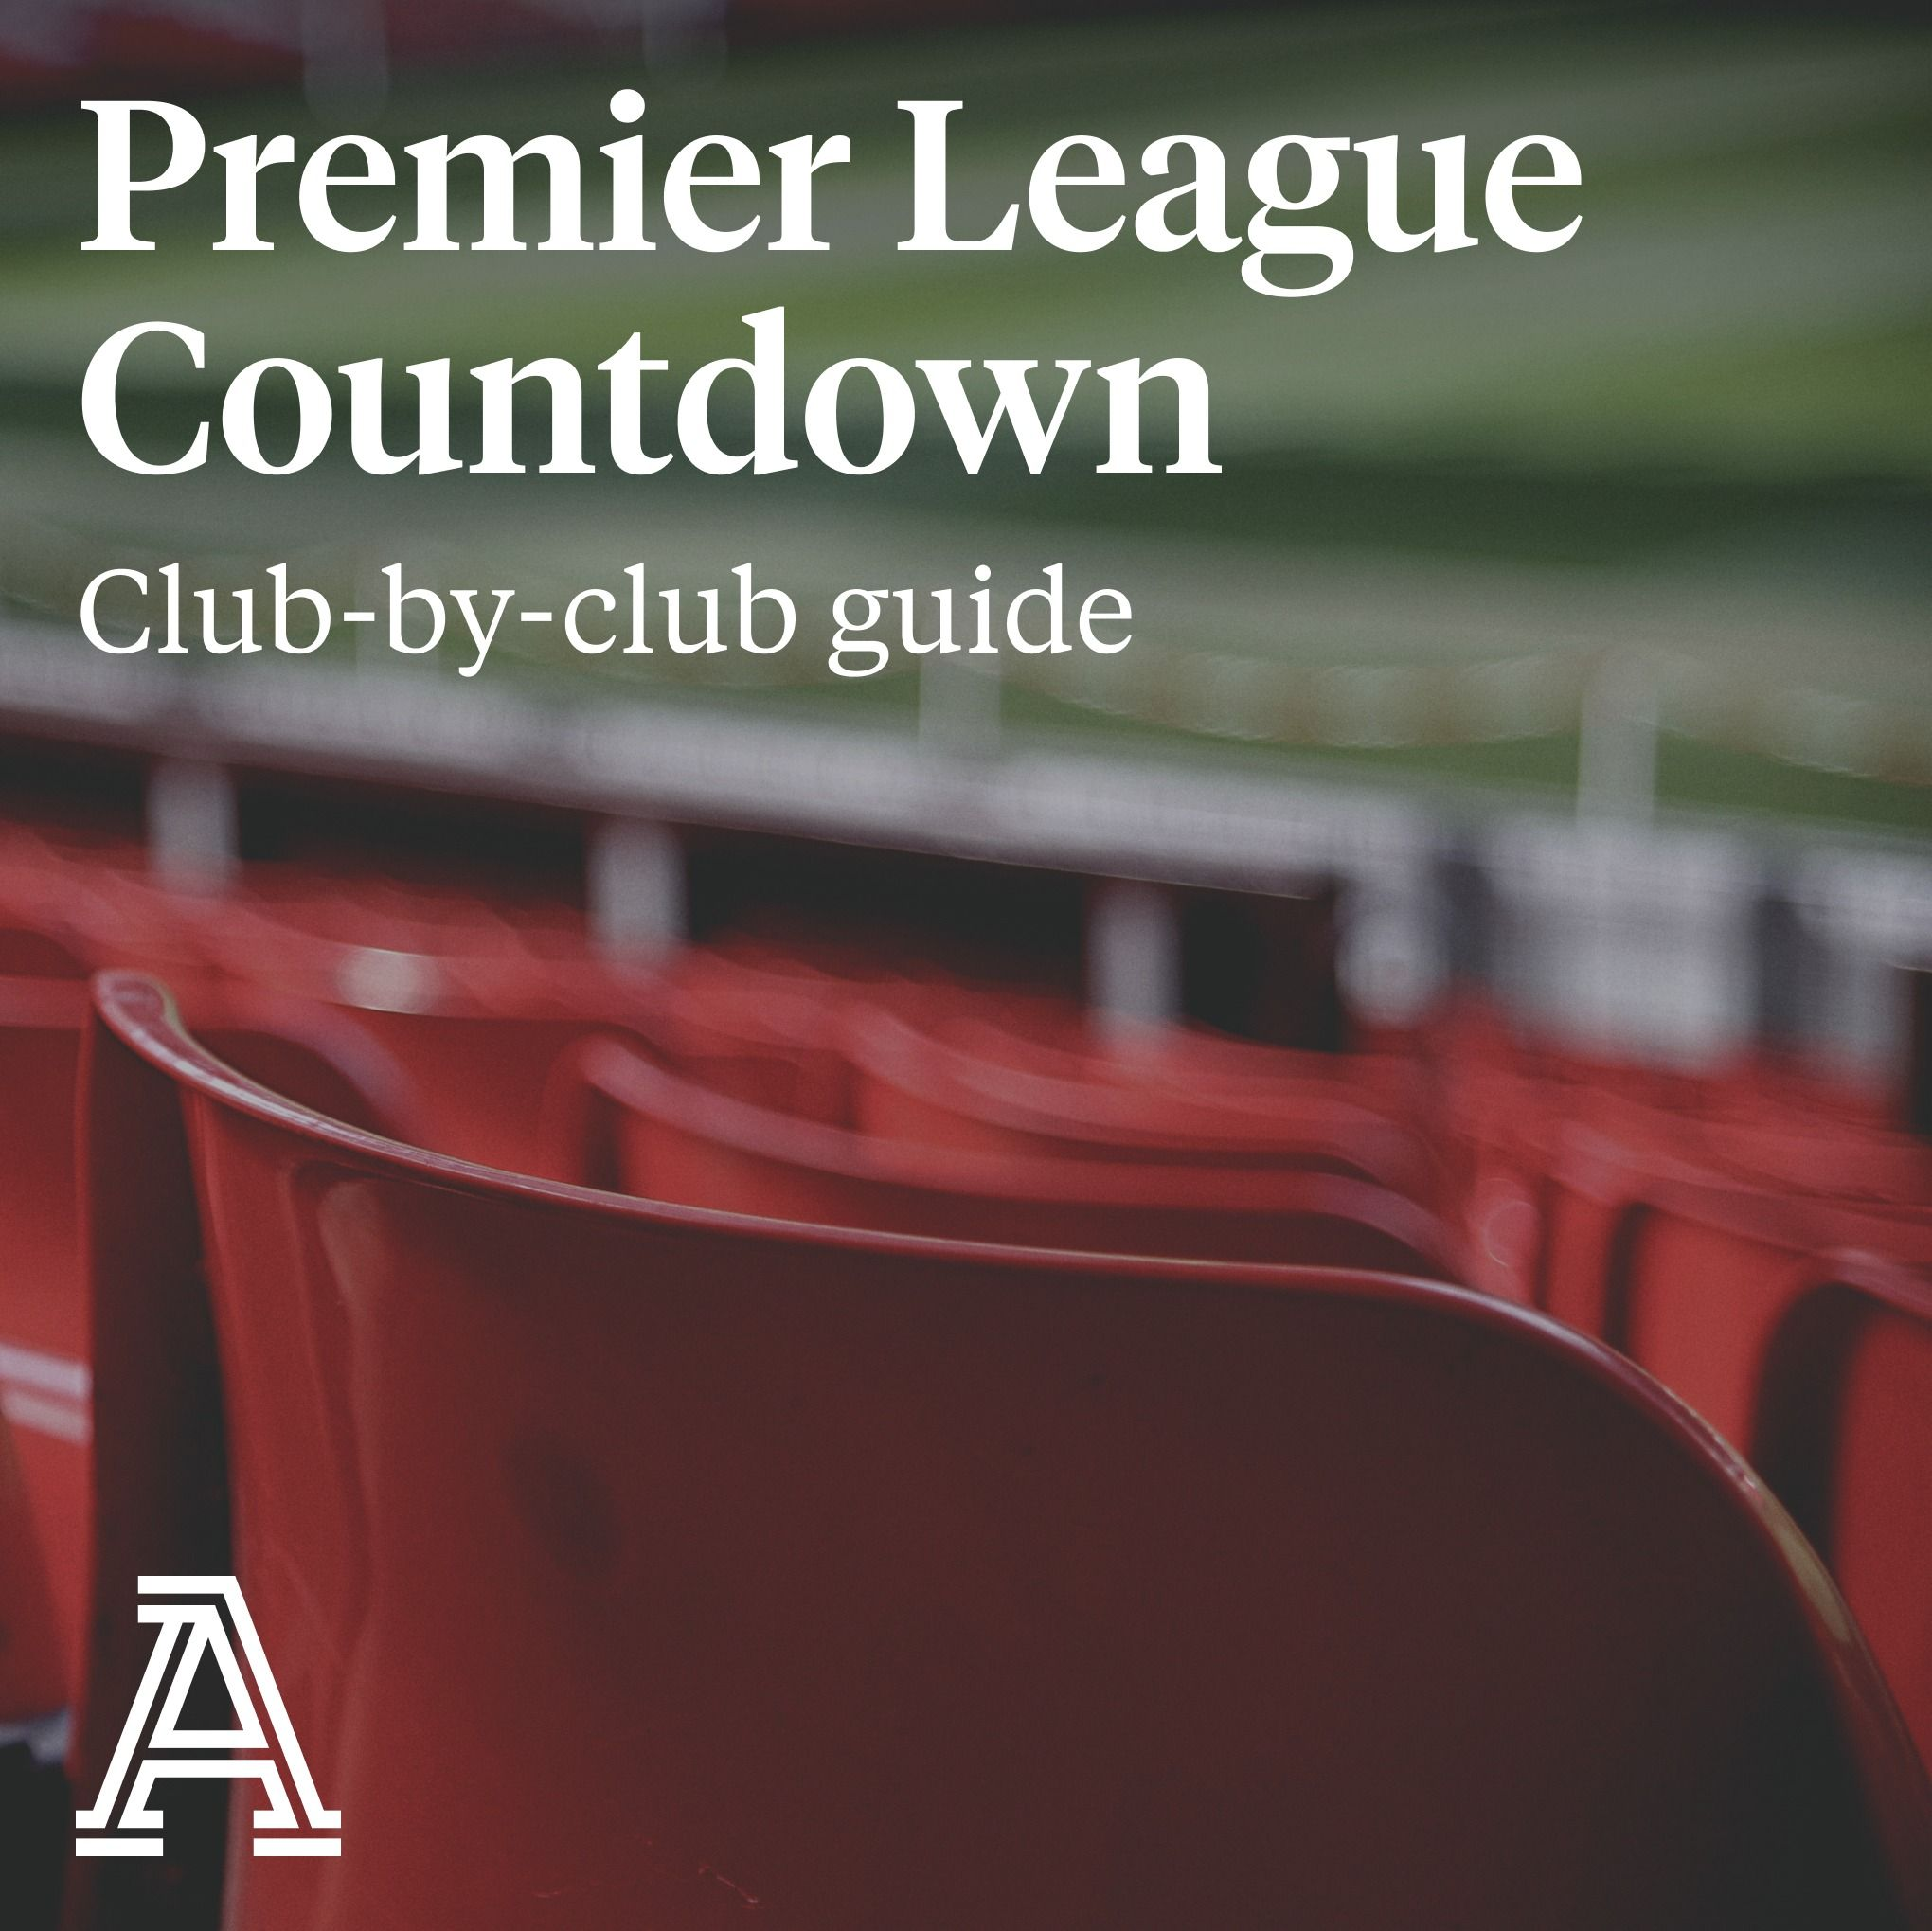 Premier League Countdown - Spurs